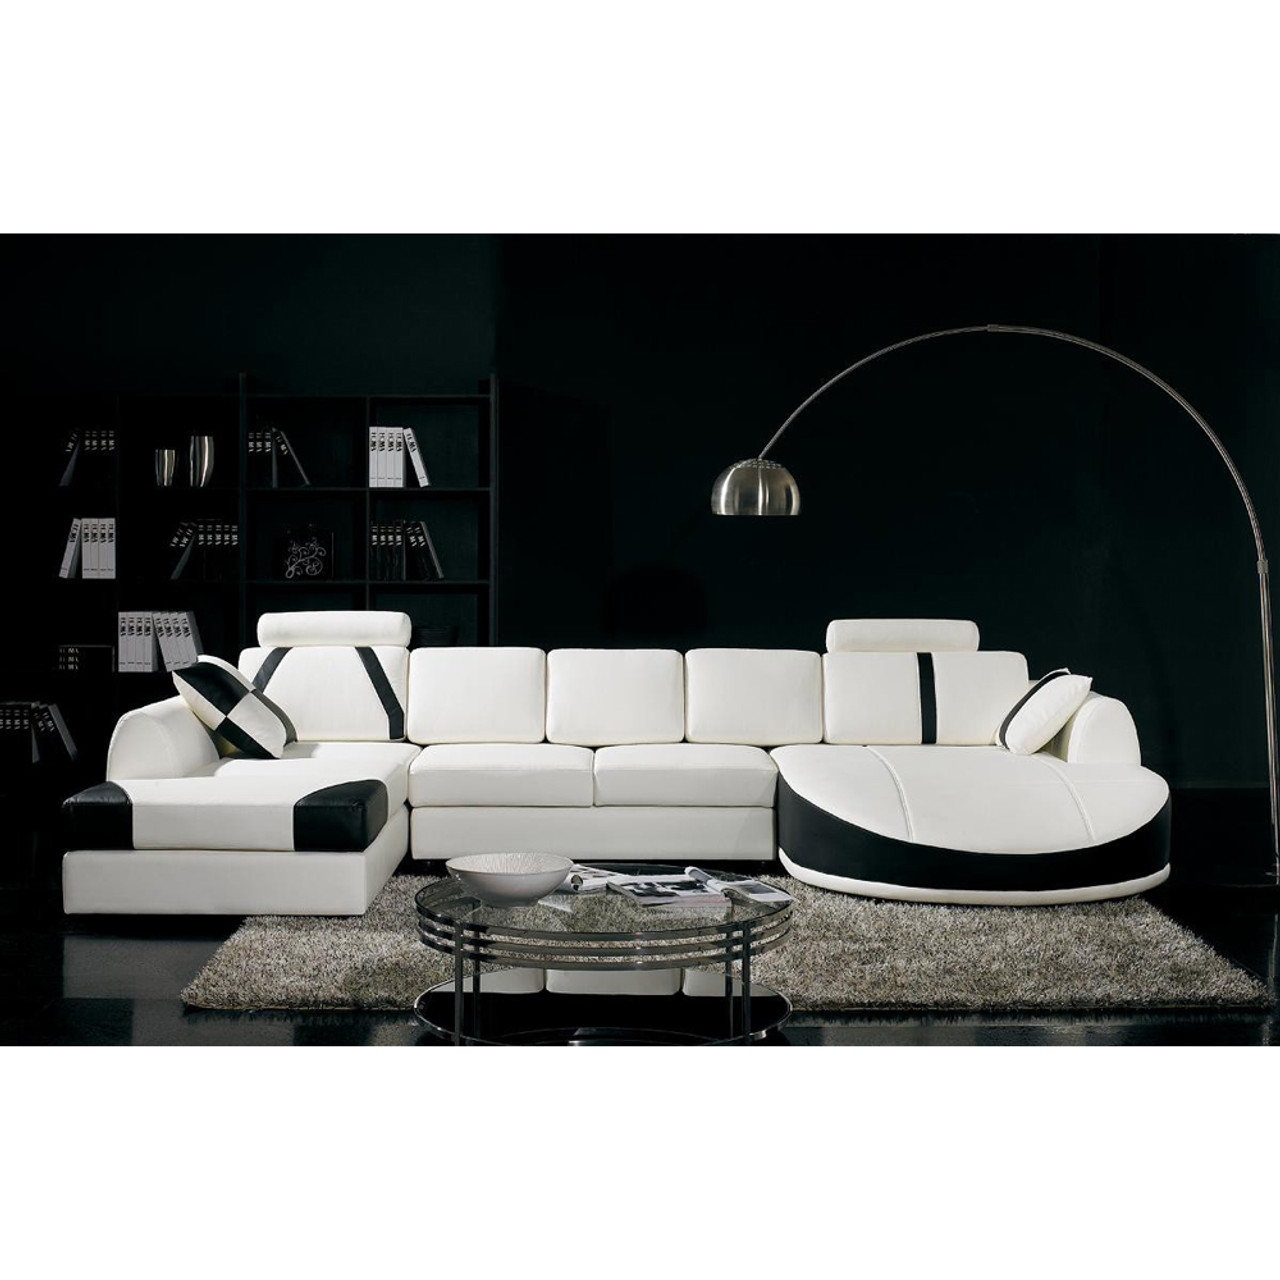 Divani Casa T57 Modern White and Black Bonded Leather Sectional Sofa ...